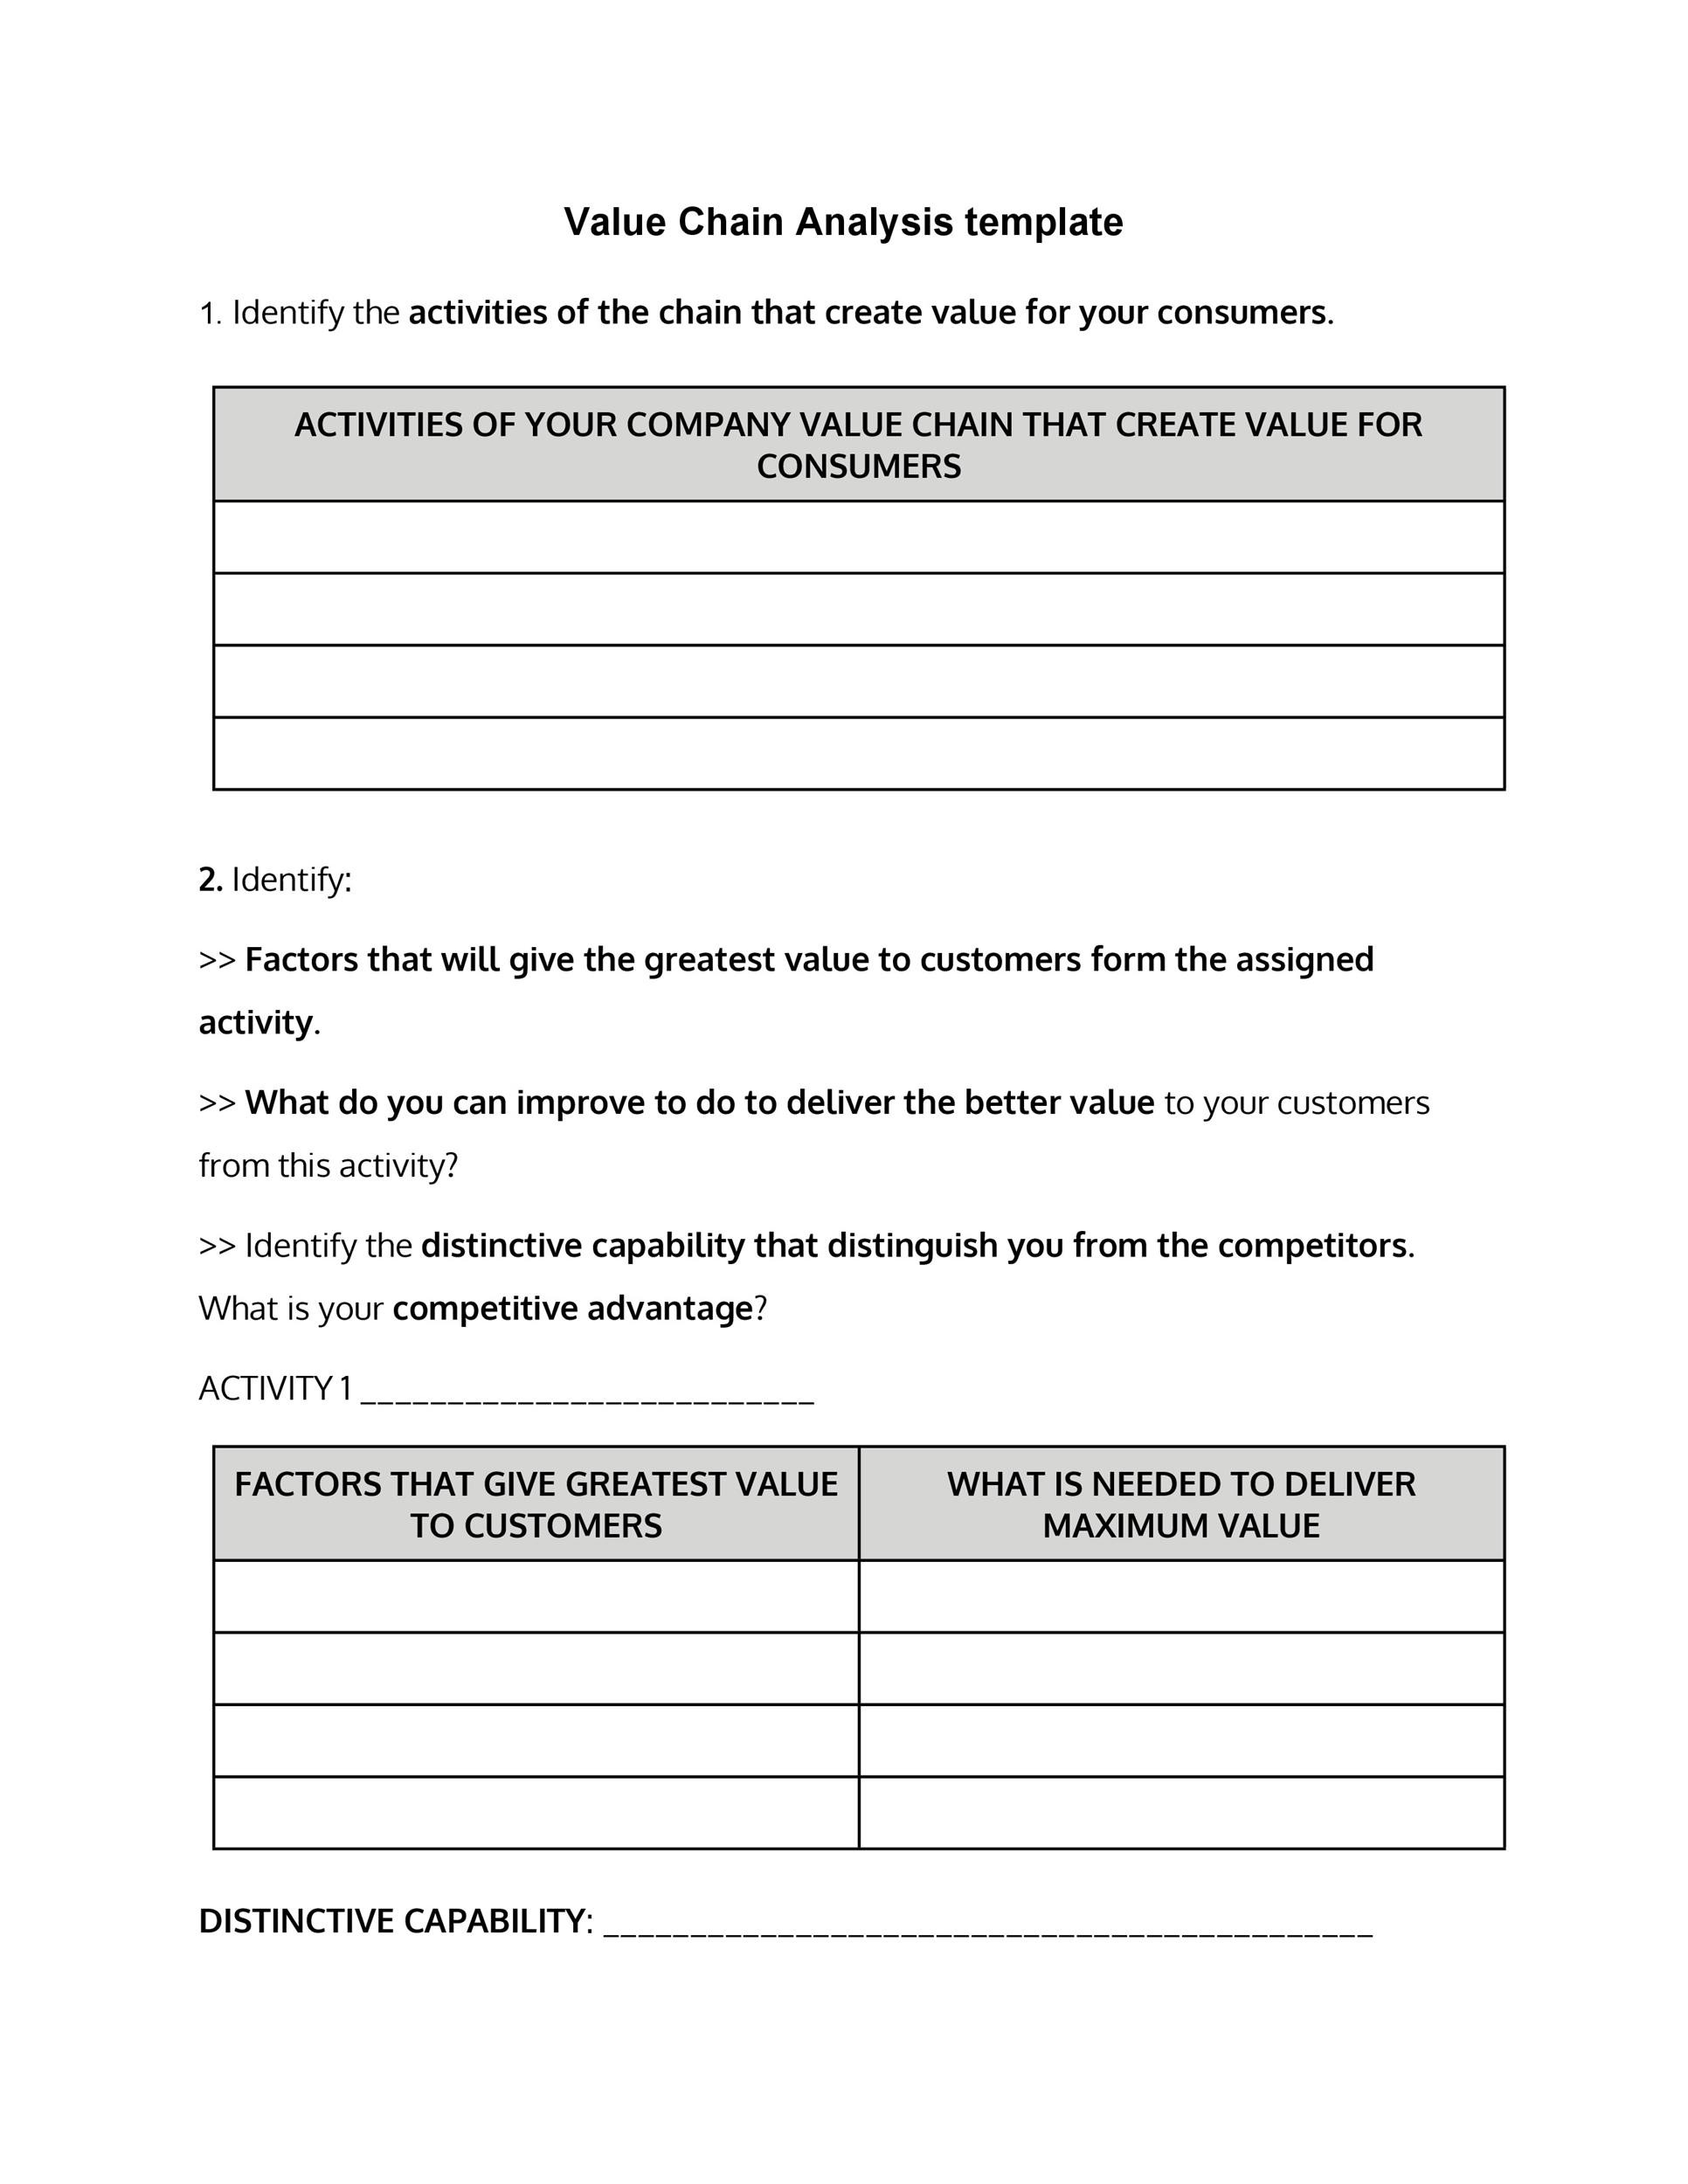 Free value chain analysis template 10